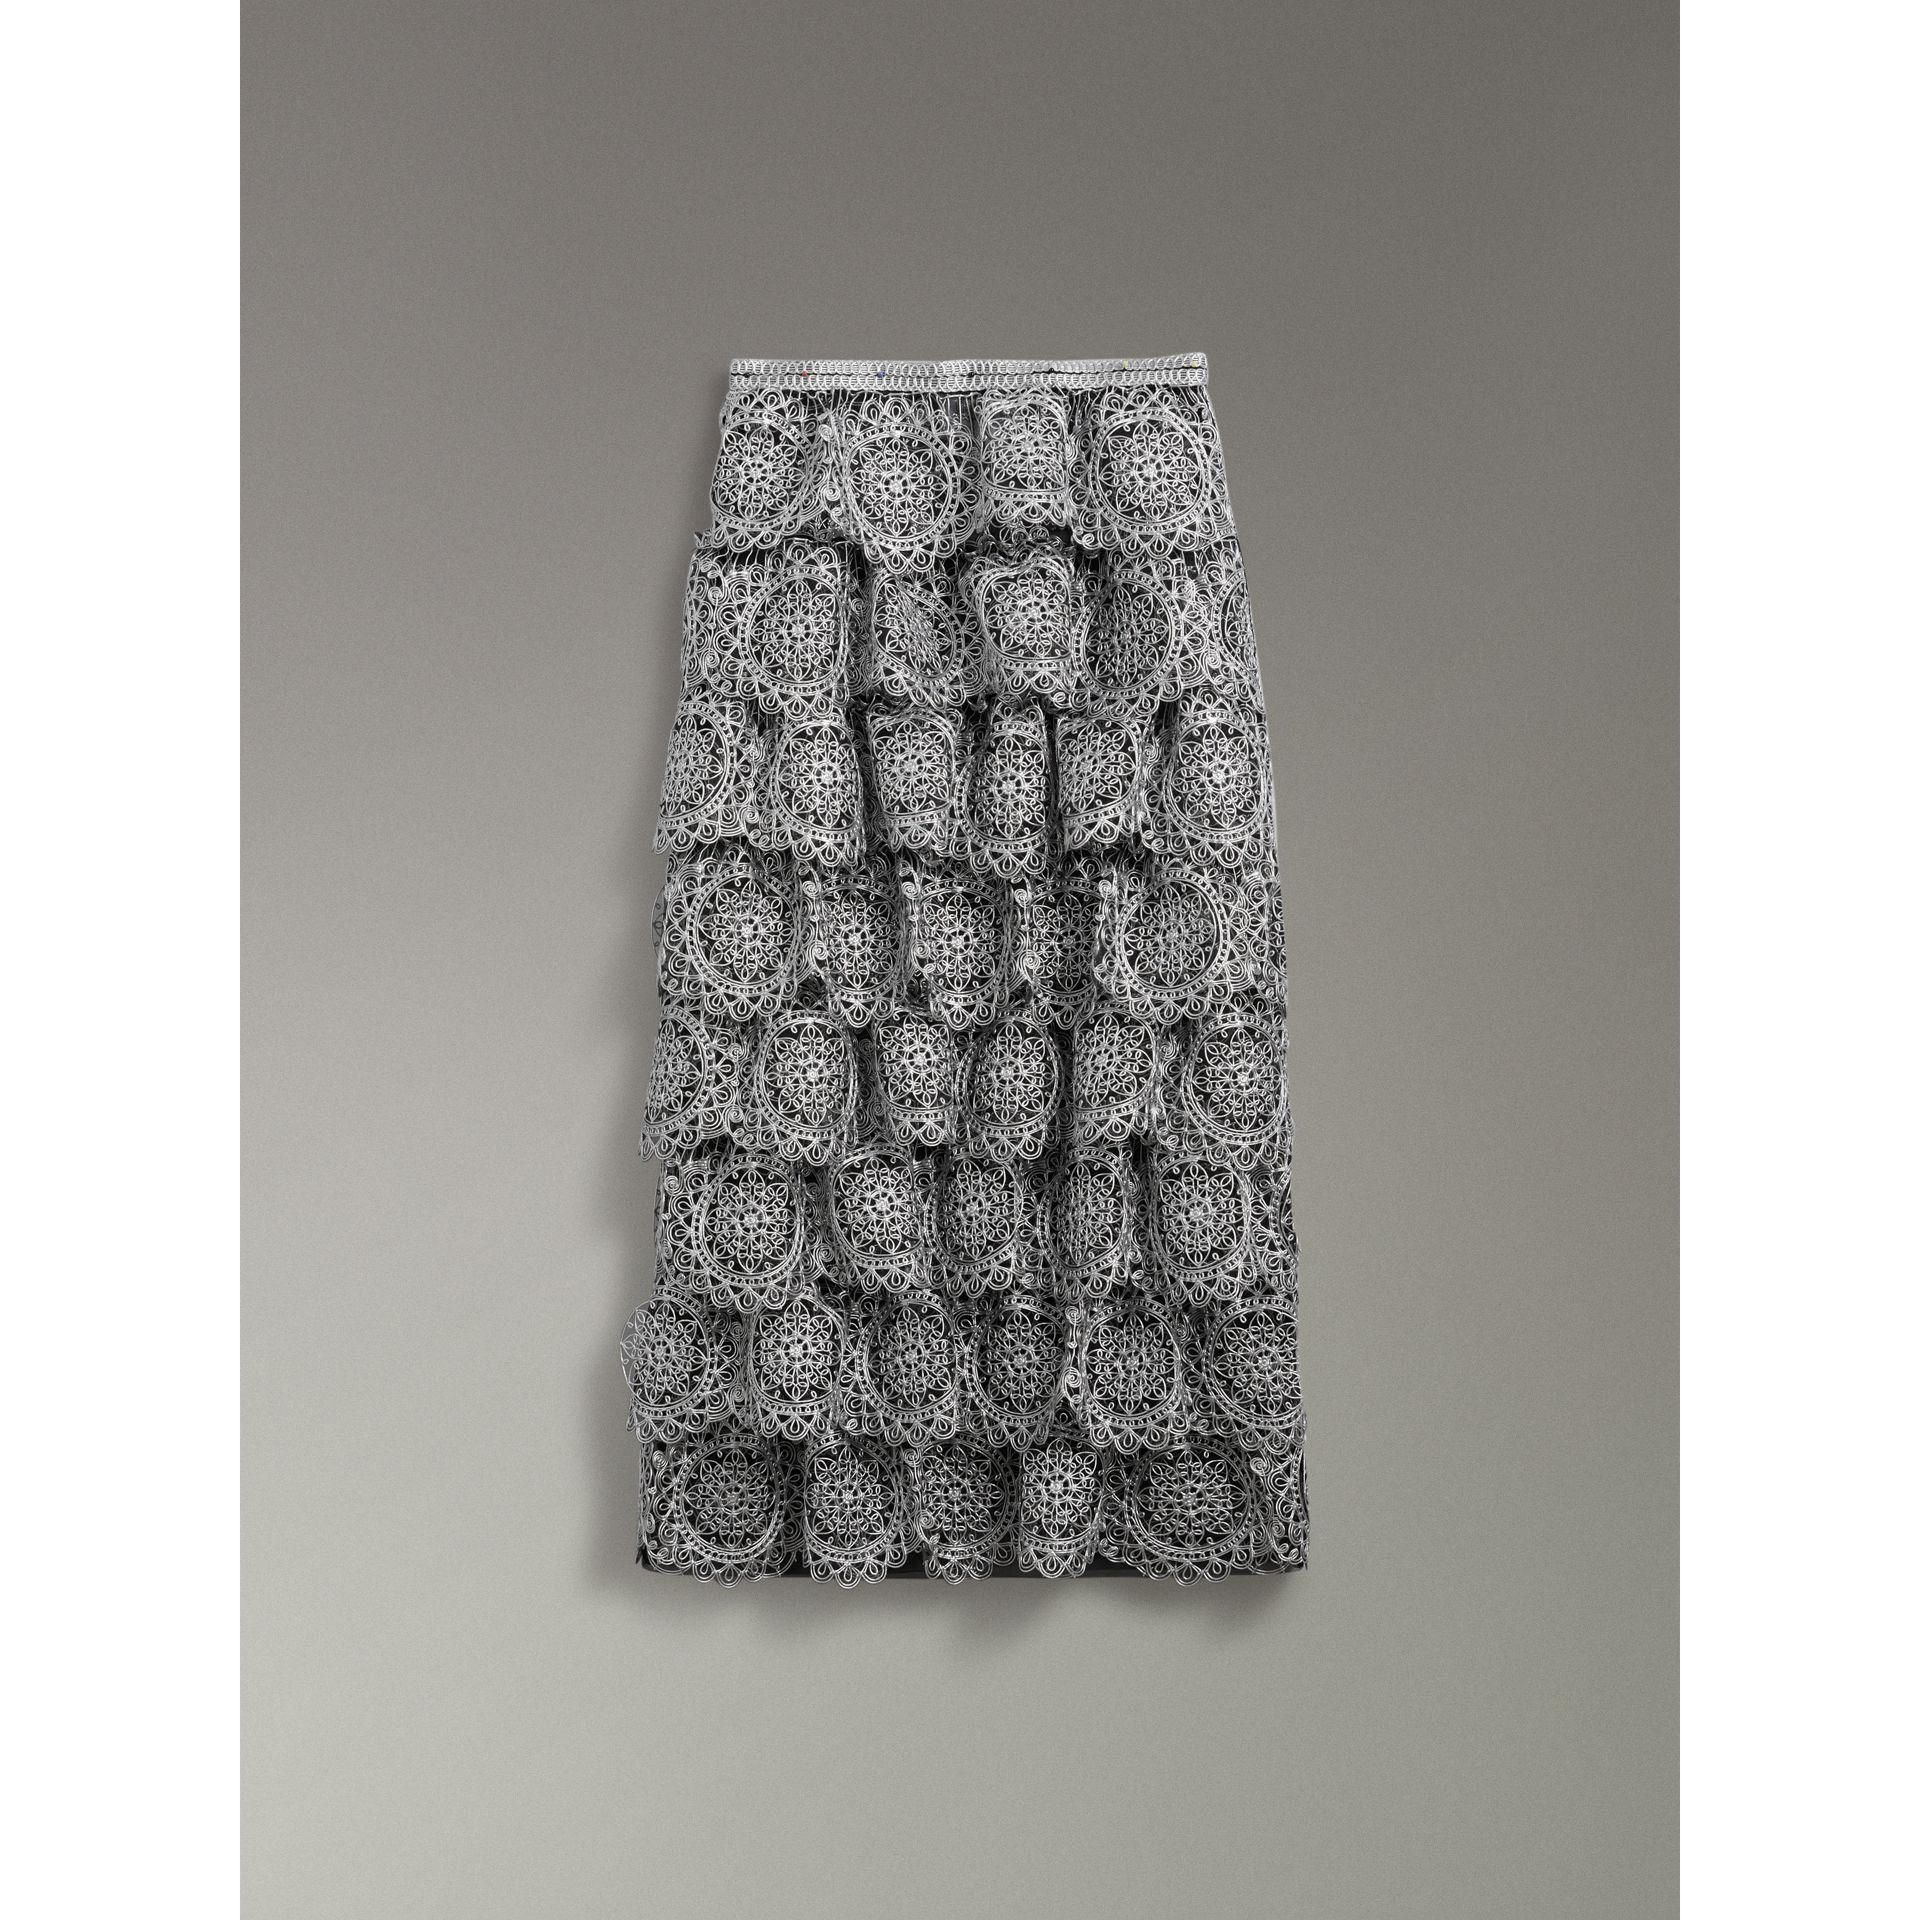 Tiered Silicone Lace Skirt in Silver - Women | Burberry - gallery image 3